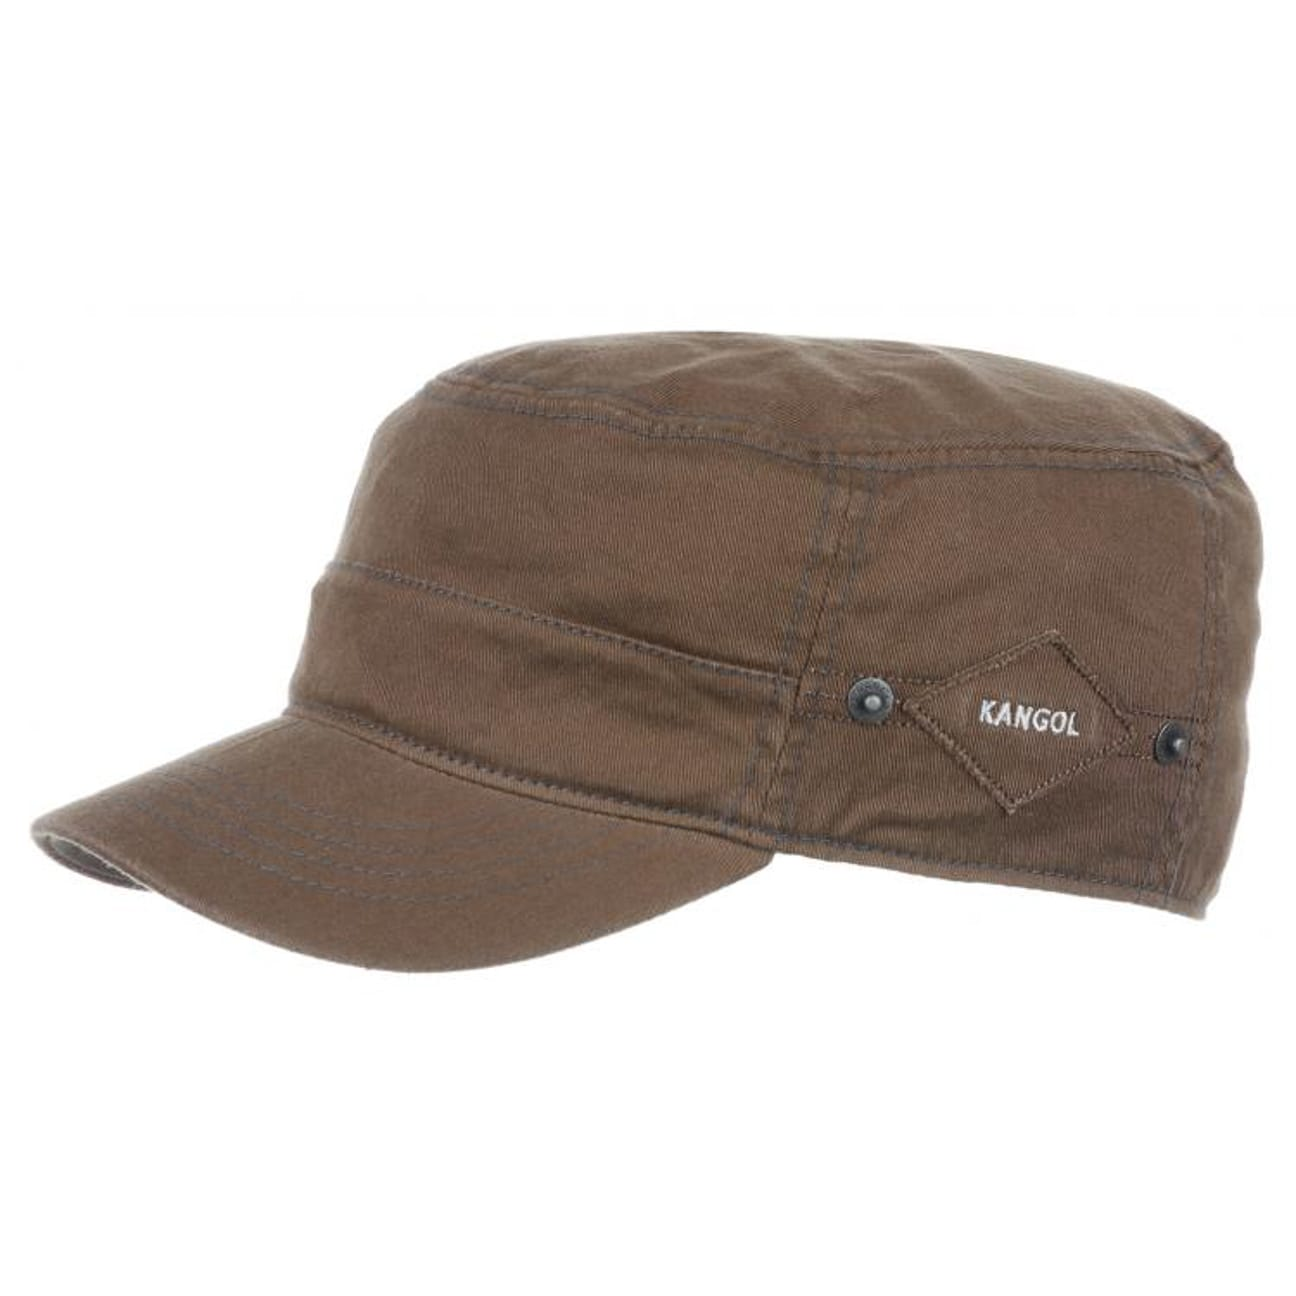 patched army cap by kangol 3600